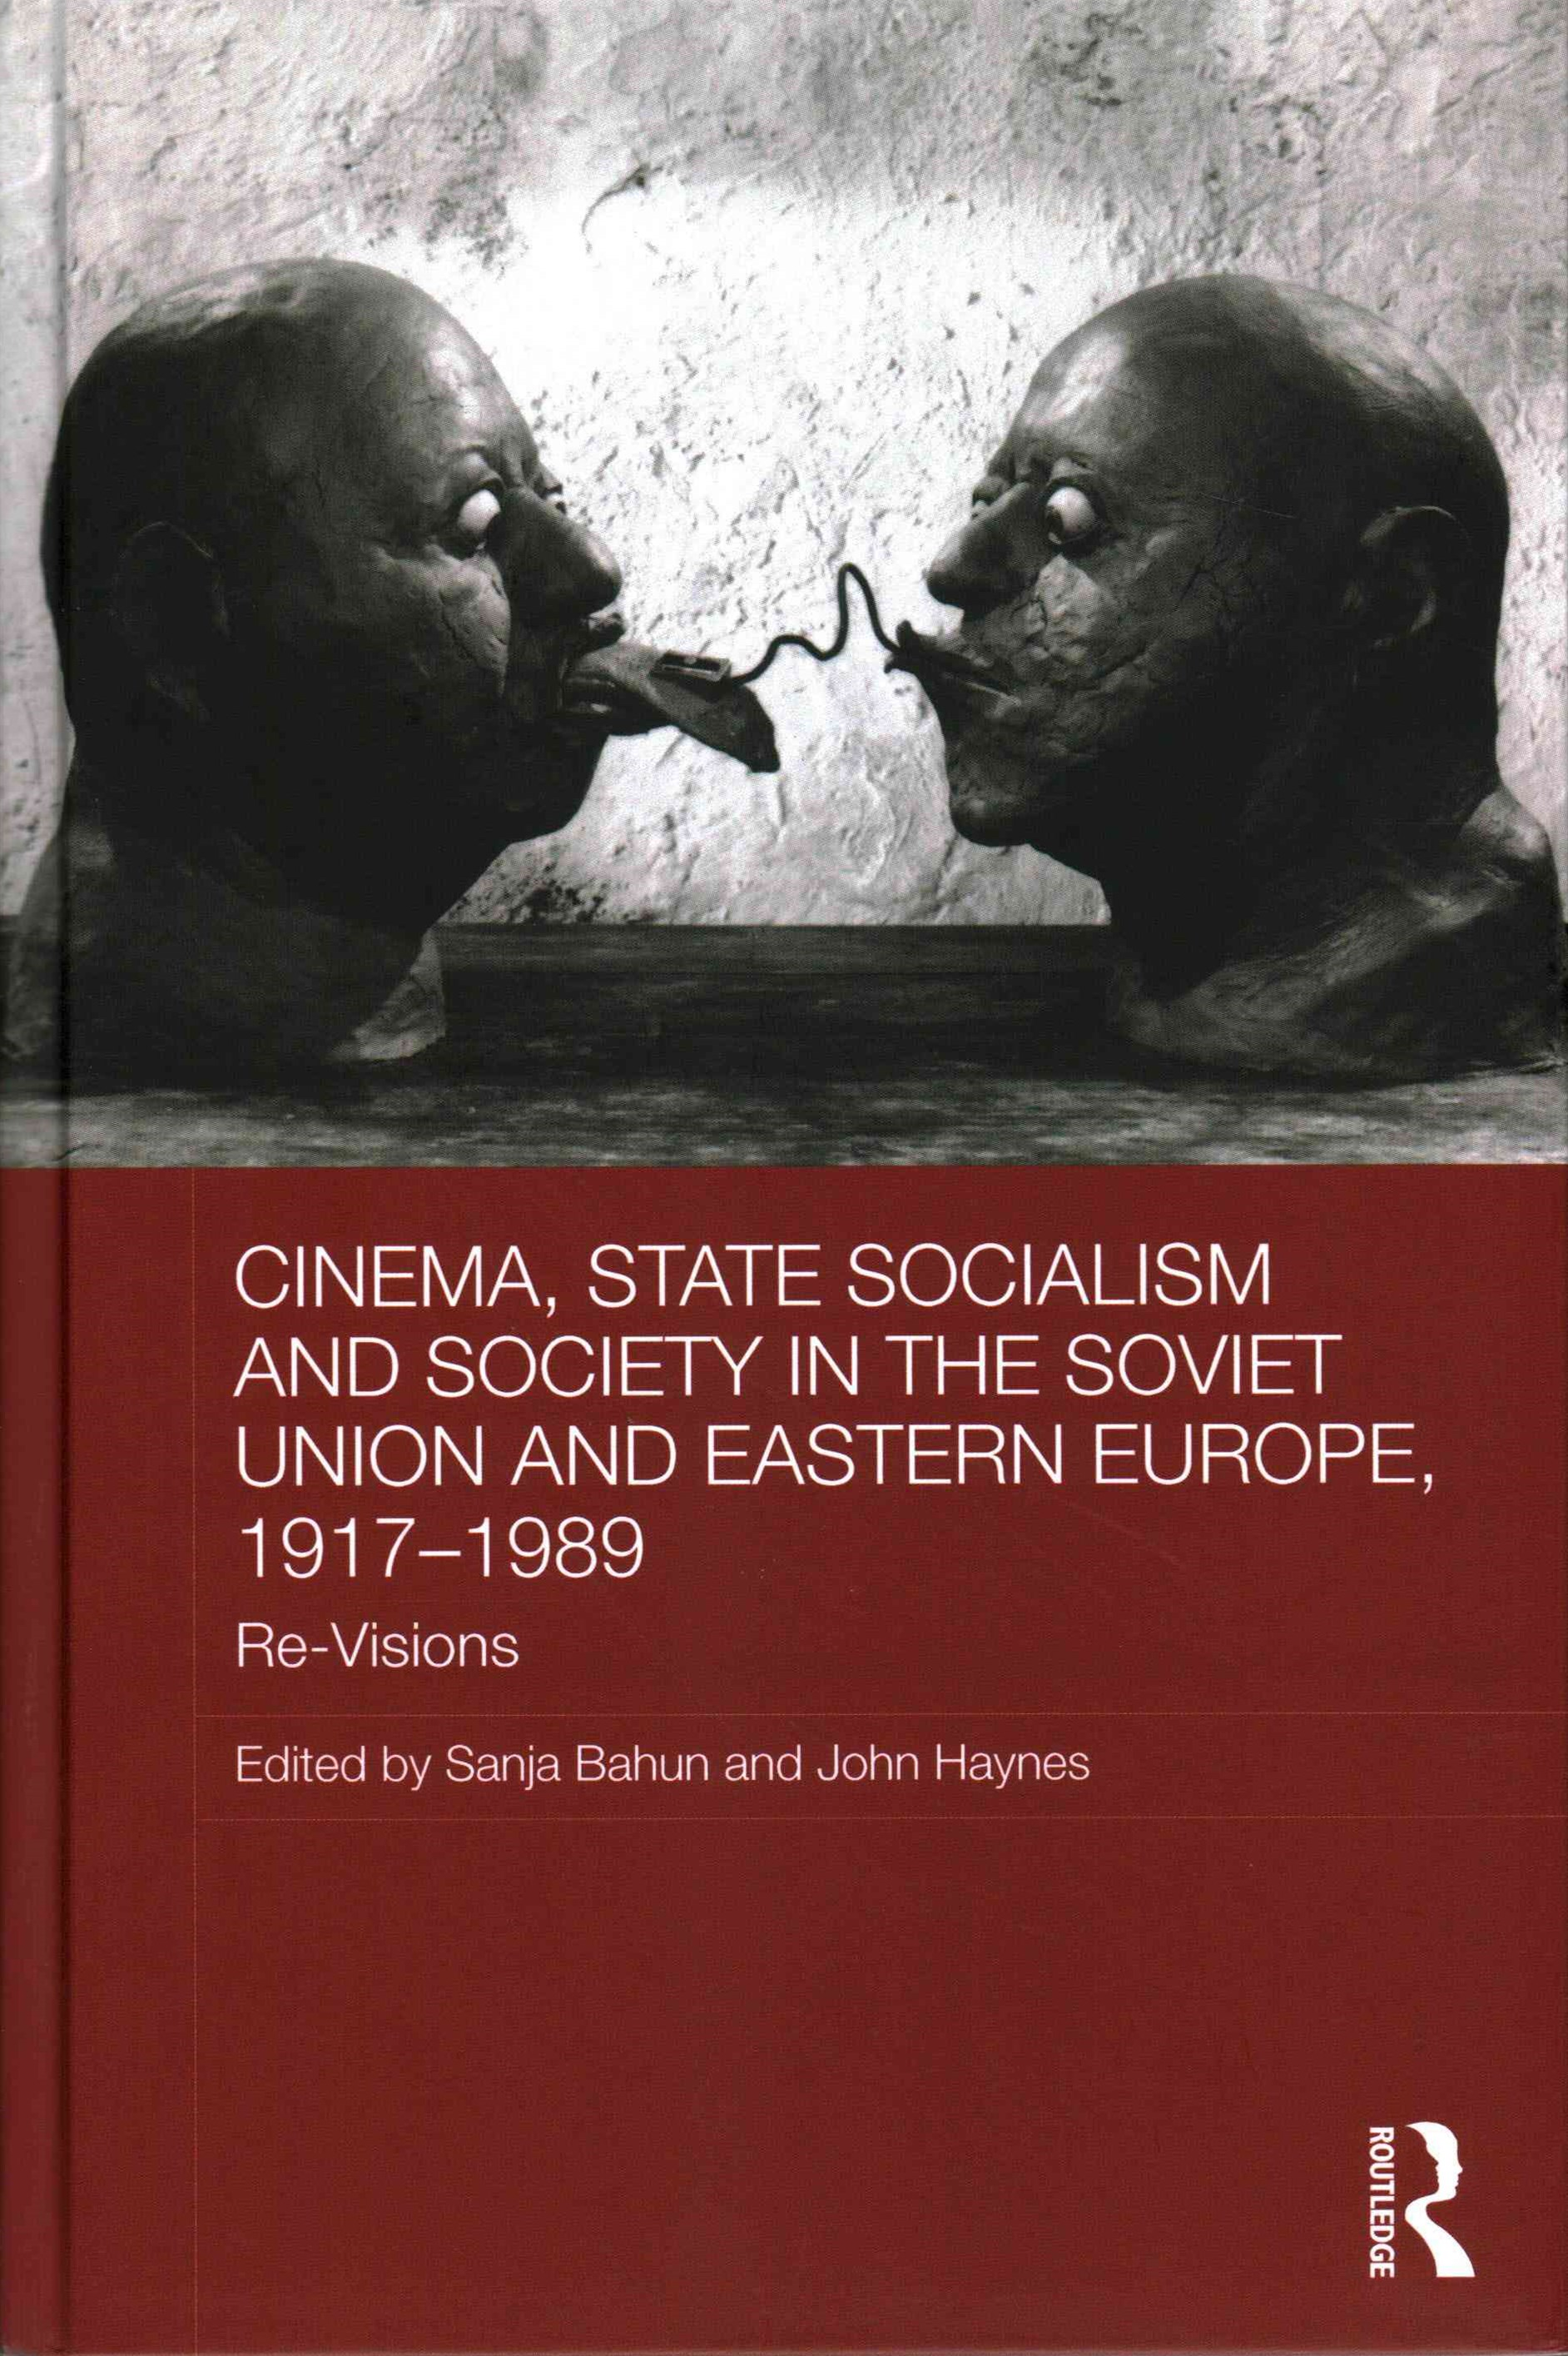 Cinema, State Socialism and Society in the Soviet Union and Eastern Europe, 1917-1989